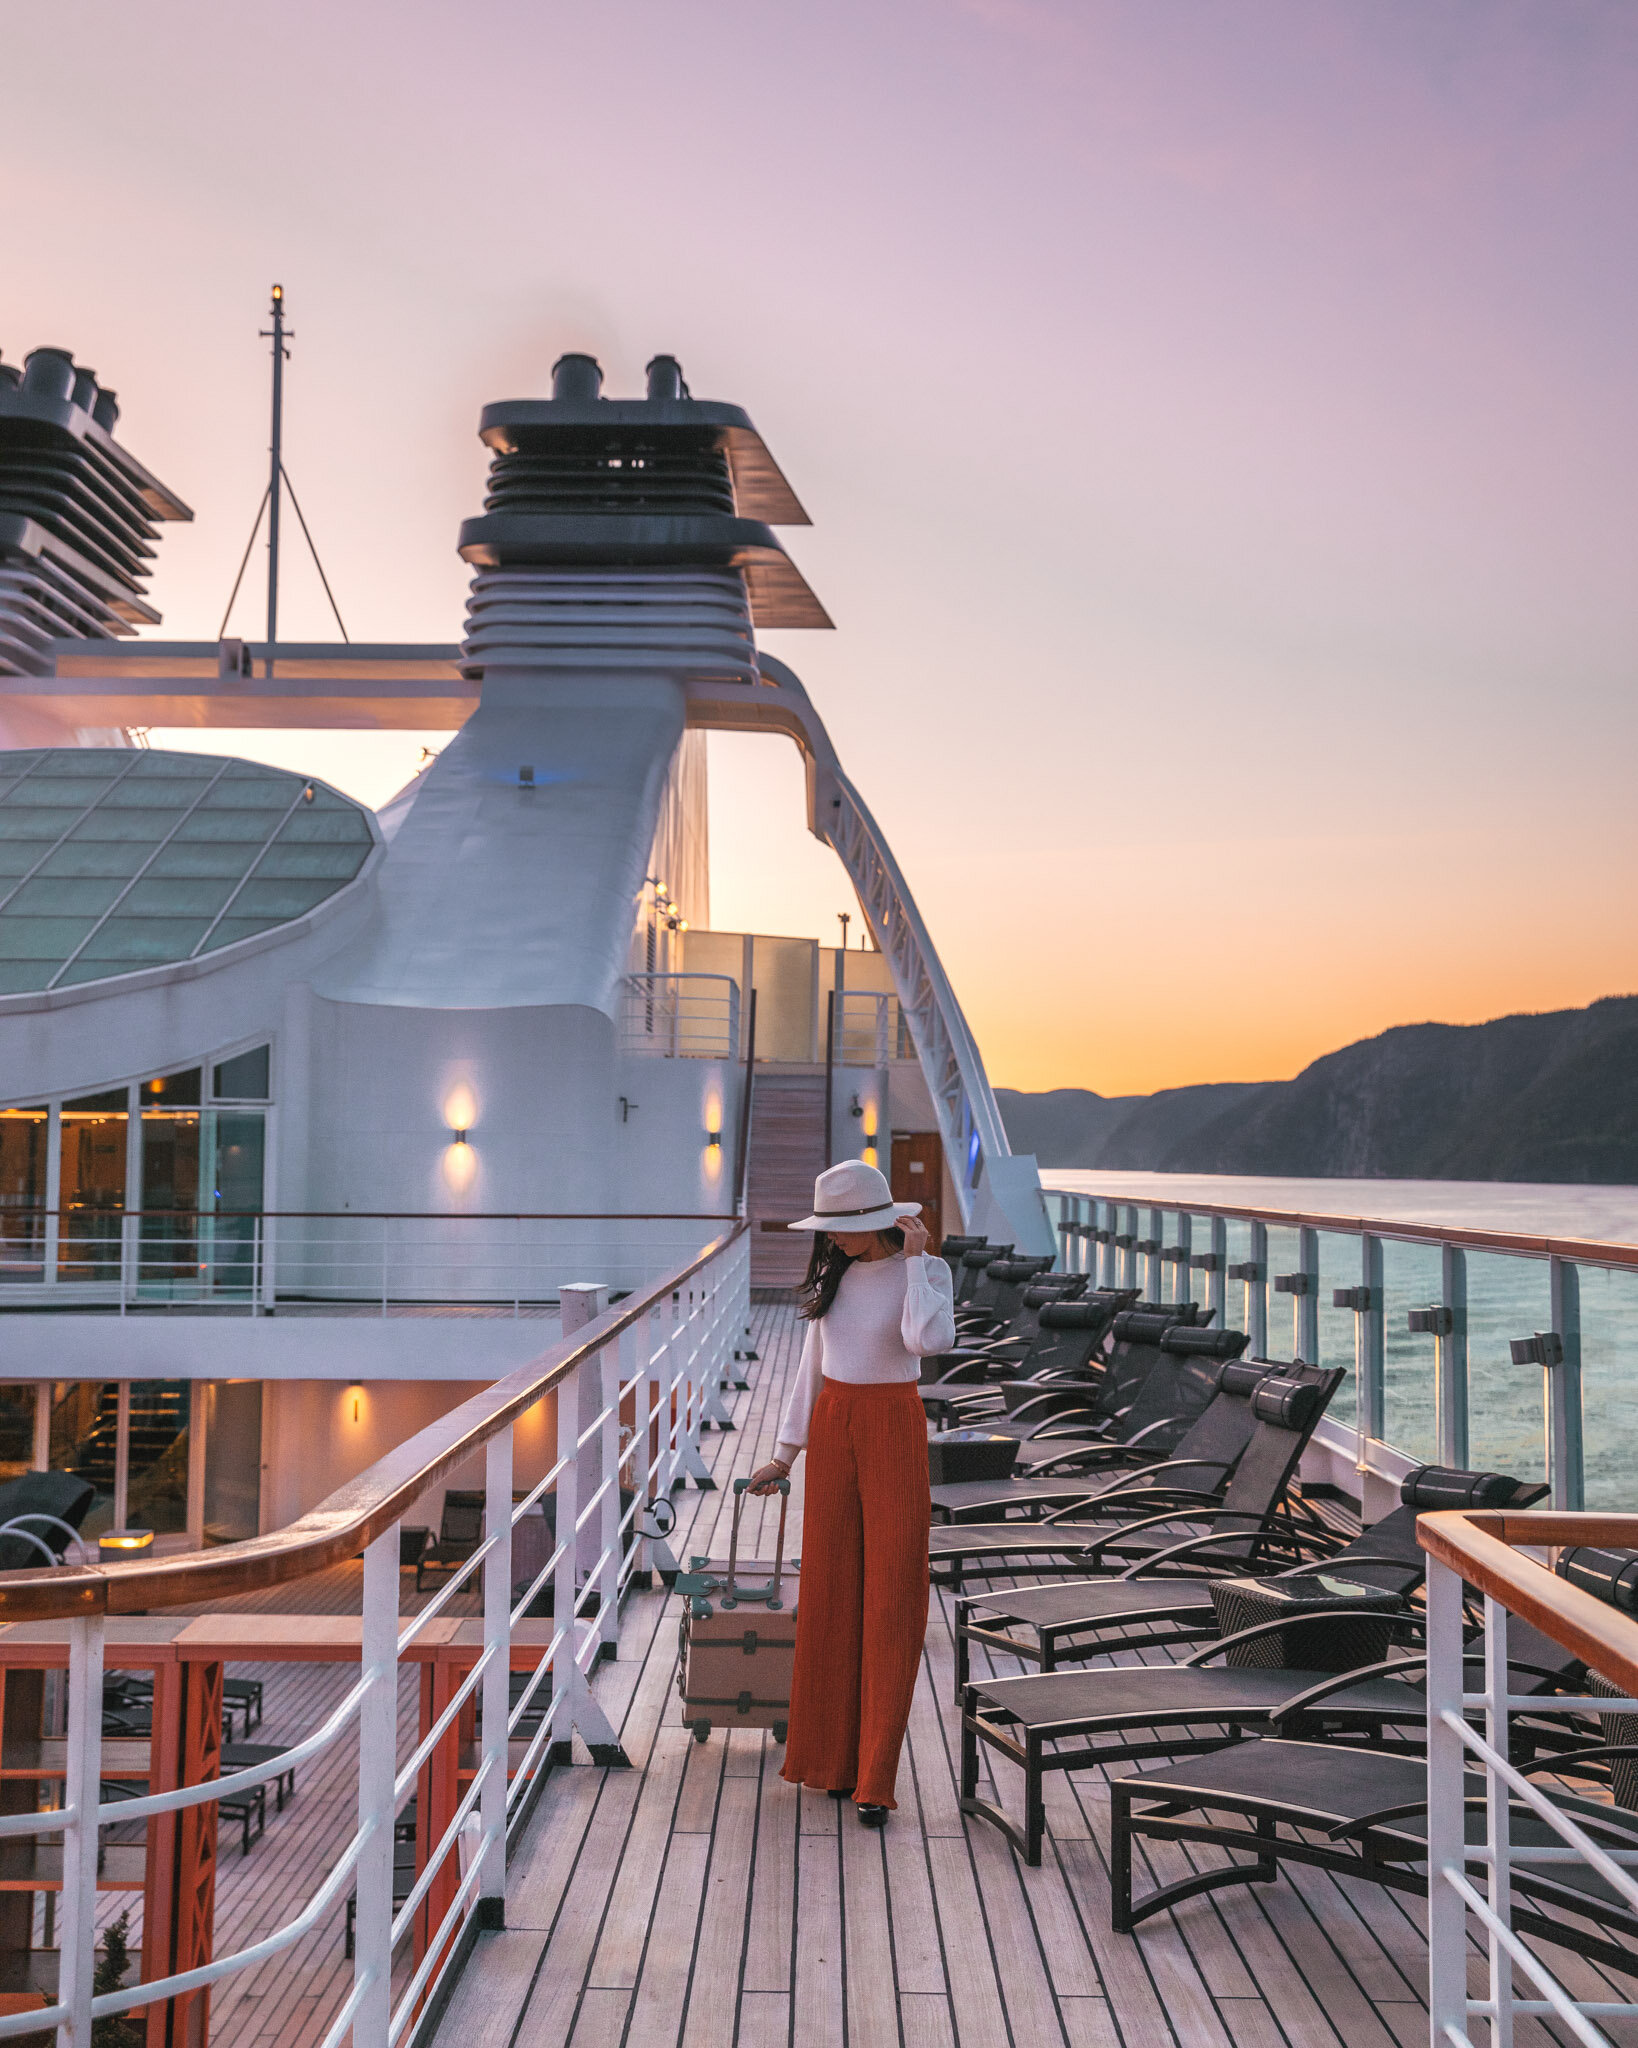 Seabourn Quest at sunset on the Saguenay Fjord in Canada // Cruise Review: 11-Day New England & Canada on the Seabourn Quest // #readysetjetset #canada #cruise #luxury #travel #cruising